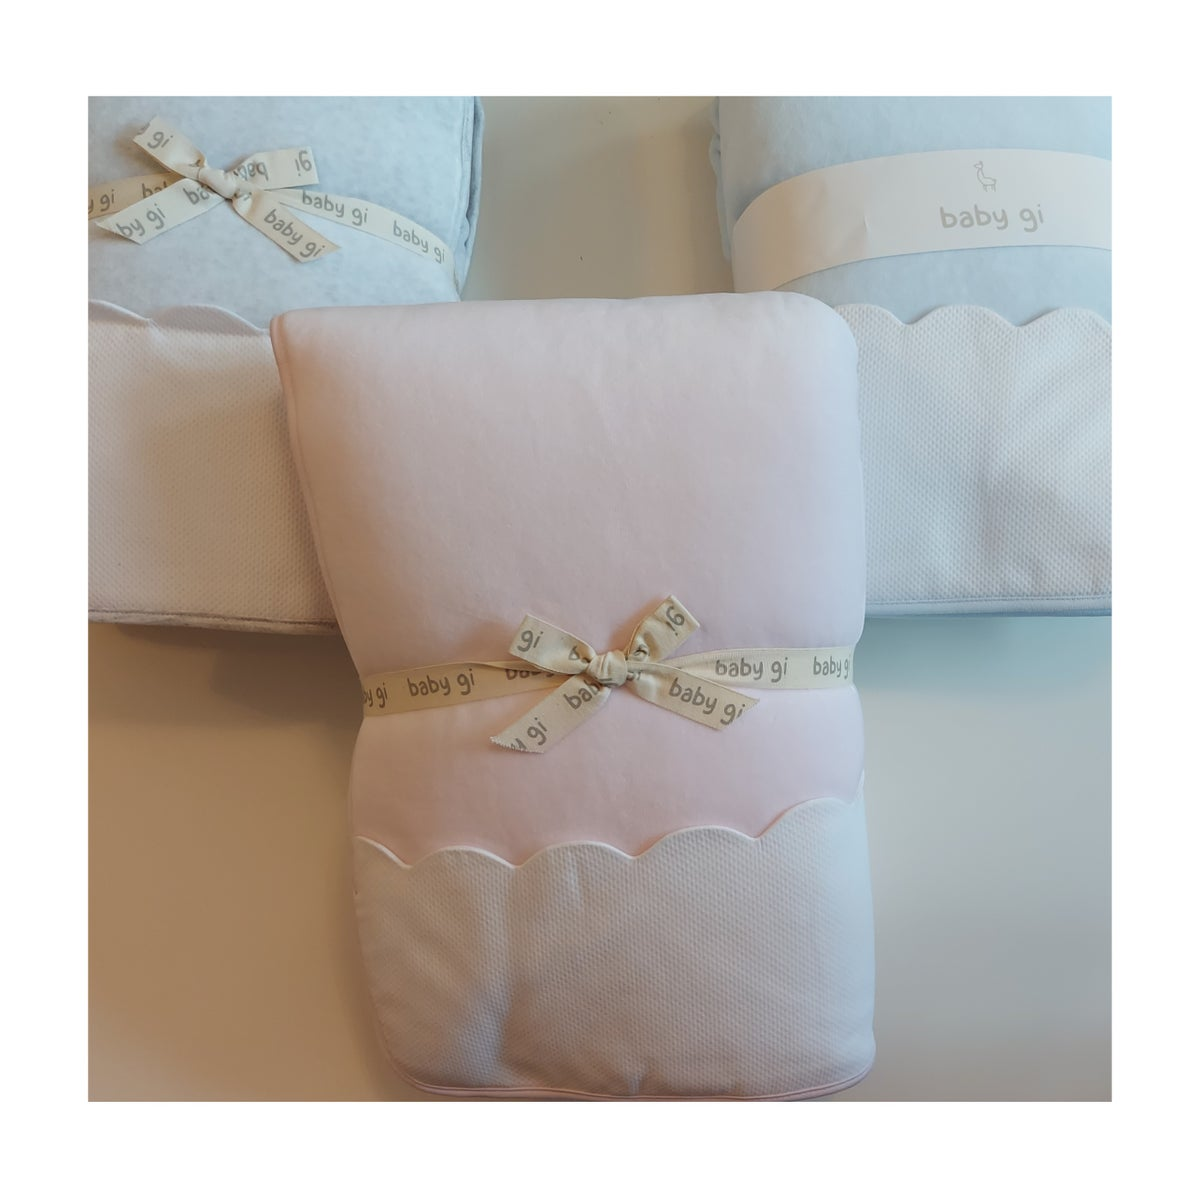 Image of Baby Gi Velour Blanket with pique